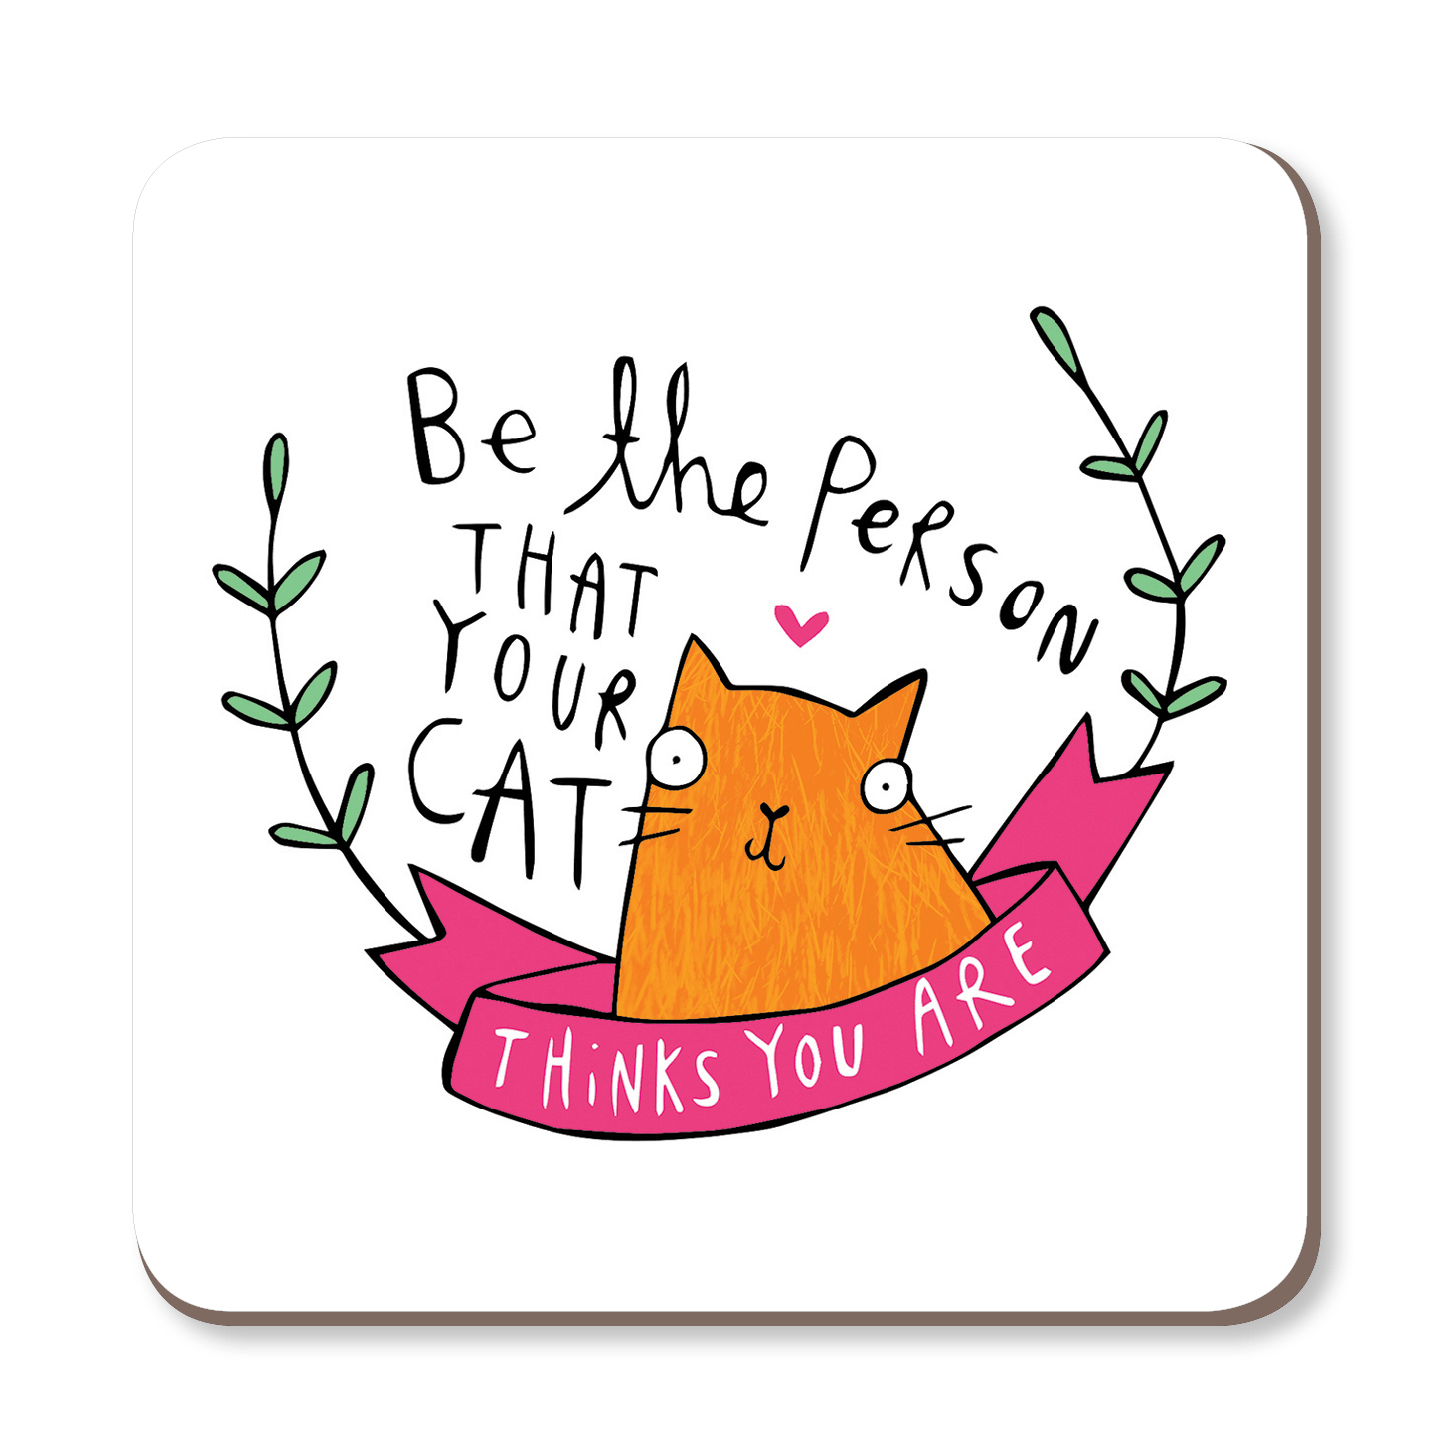 Be The Person Your Cat Thinks You Are Coaster by Katie Abey - Whale and Bird